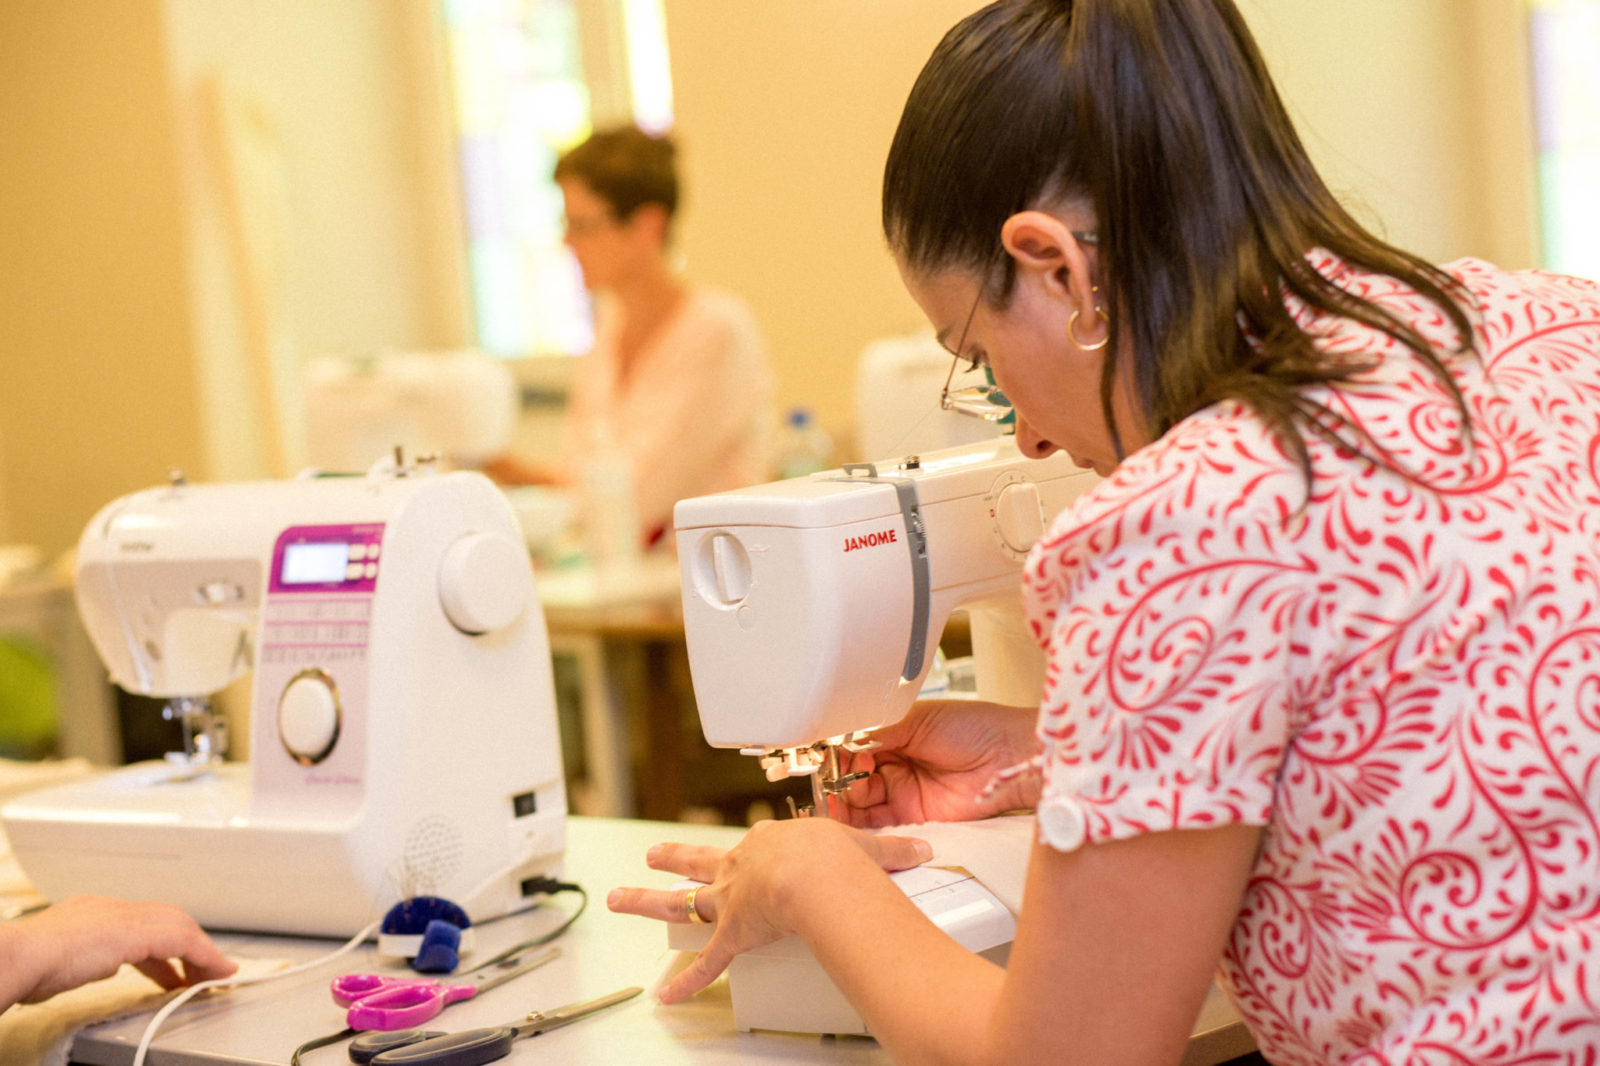 cours couture luxembourg